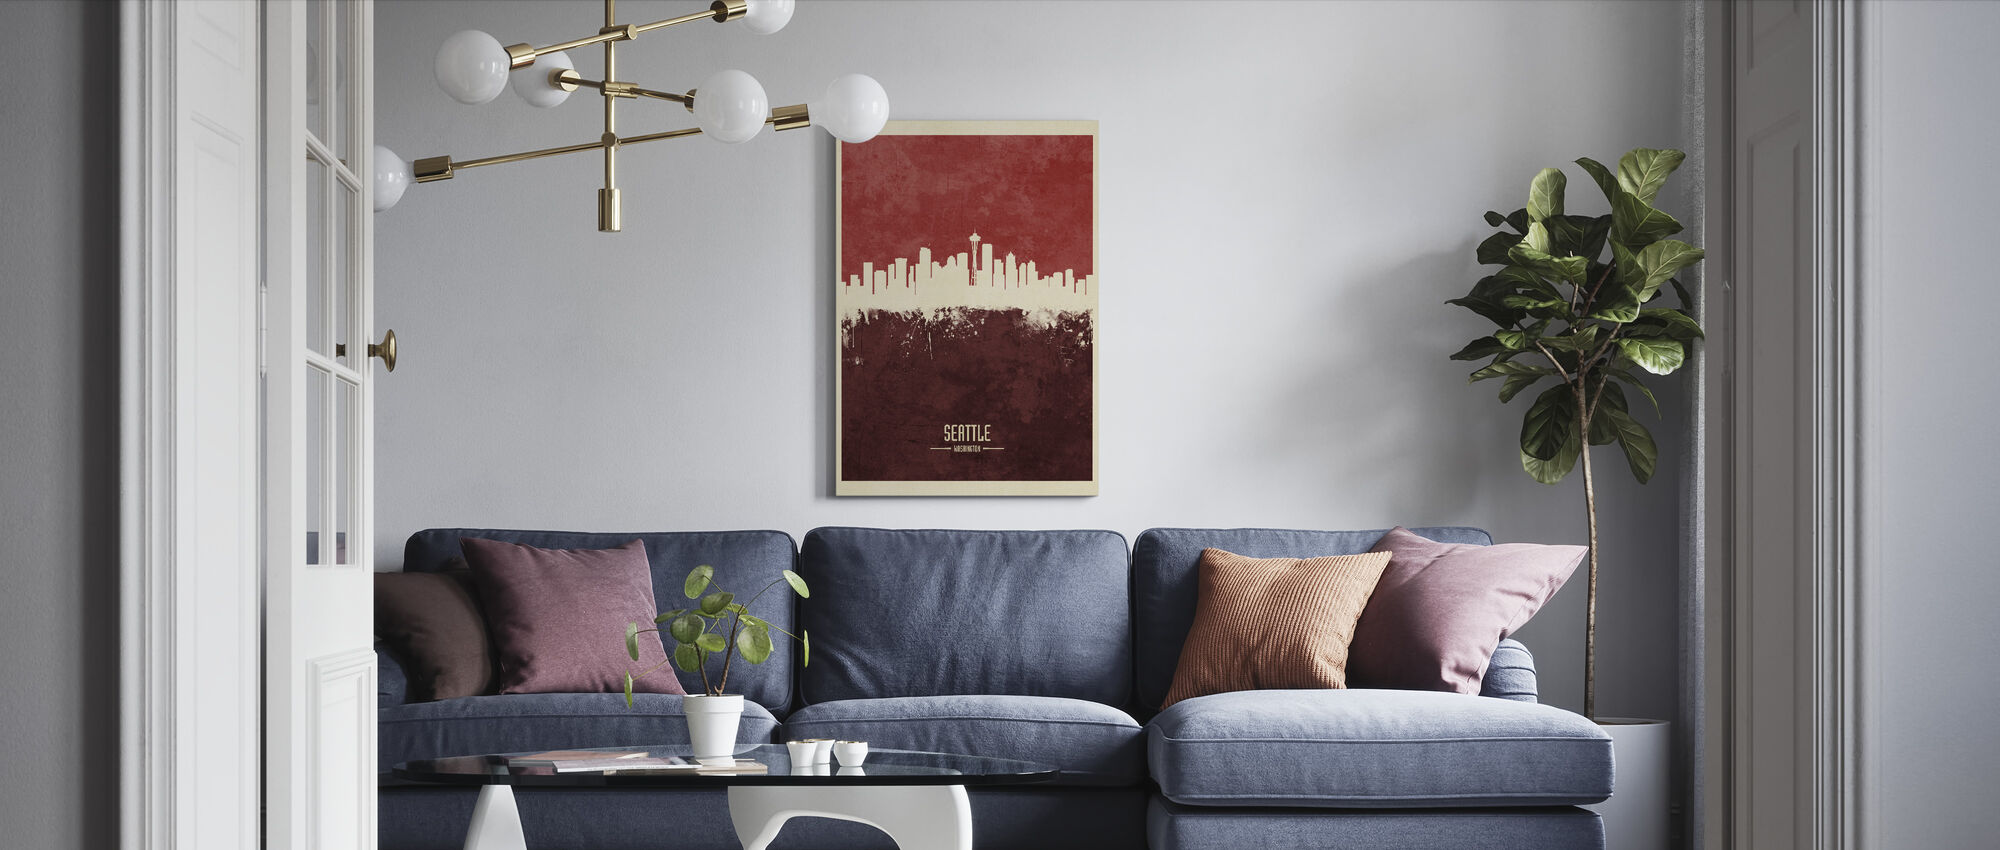 Seattle Washington Skyline Rood - Canvas print - Woonkamer